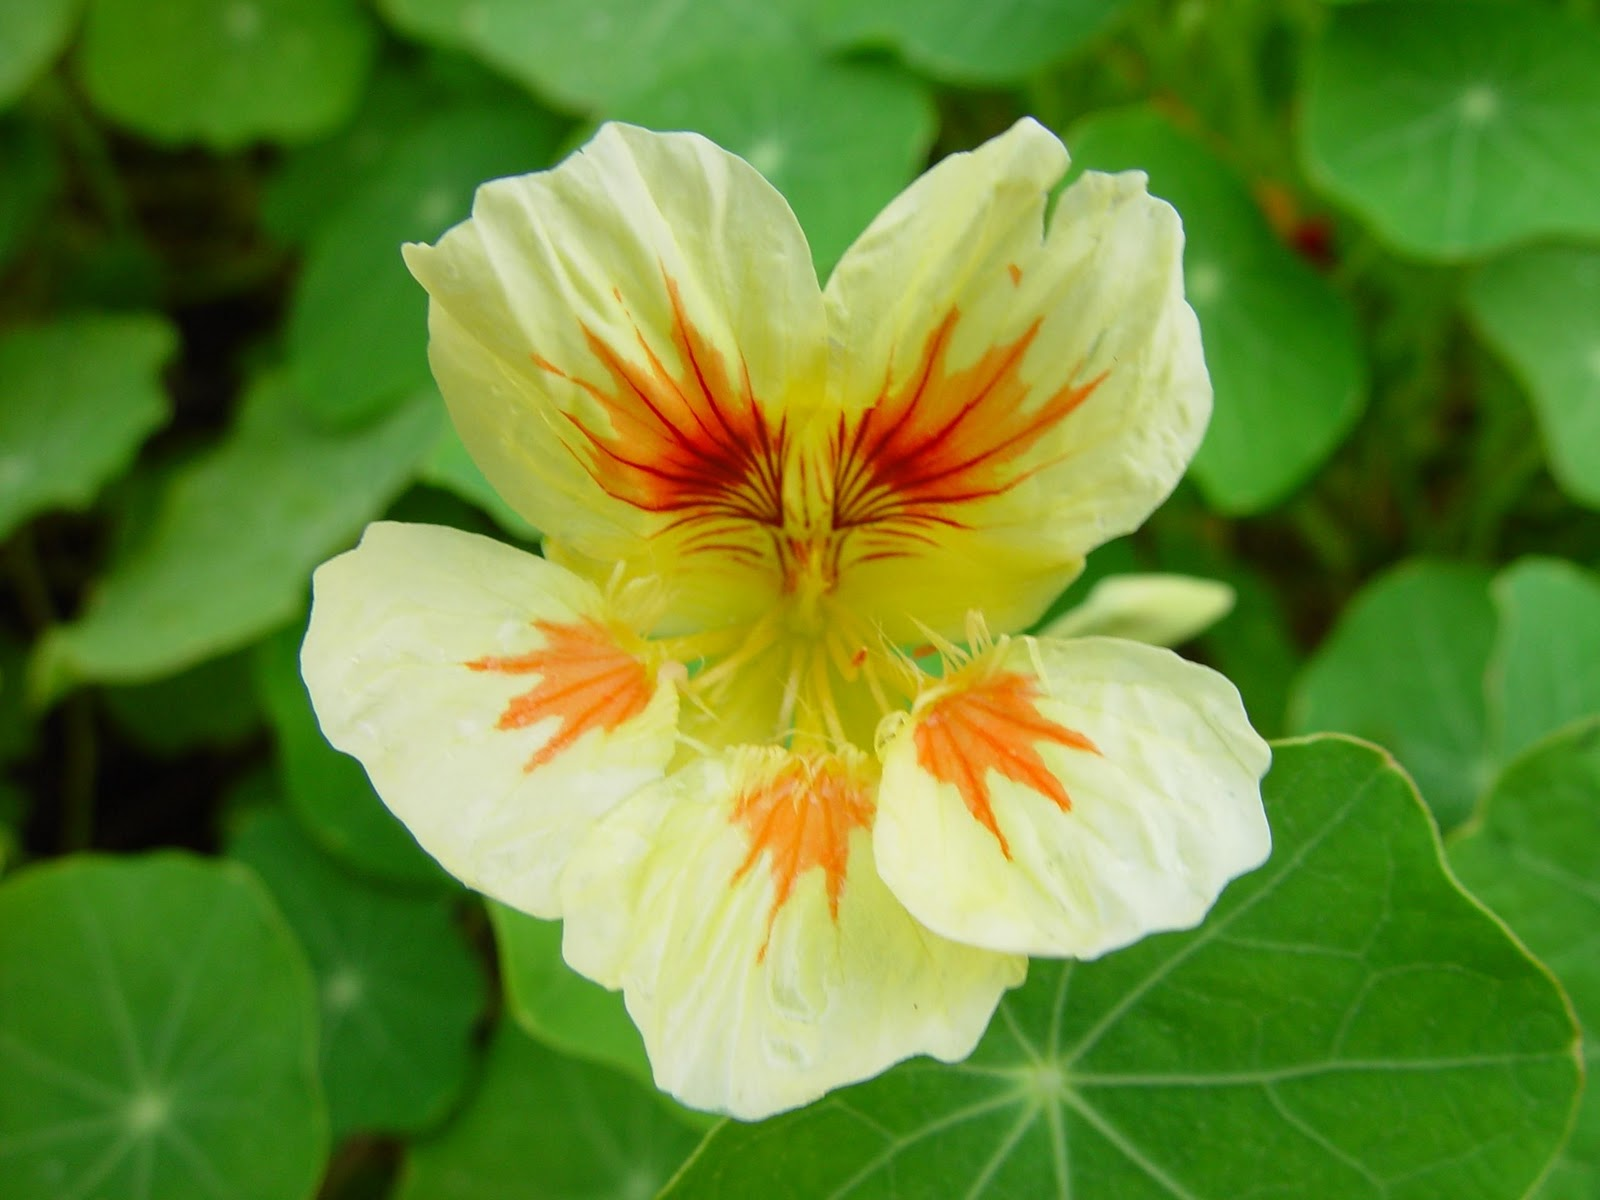 flowers for flower lovers Nasturtium flowers photos